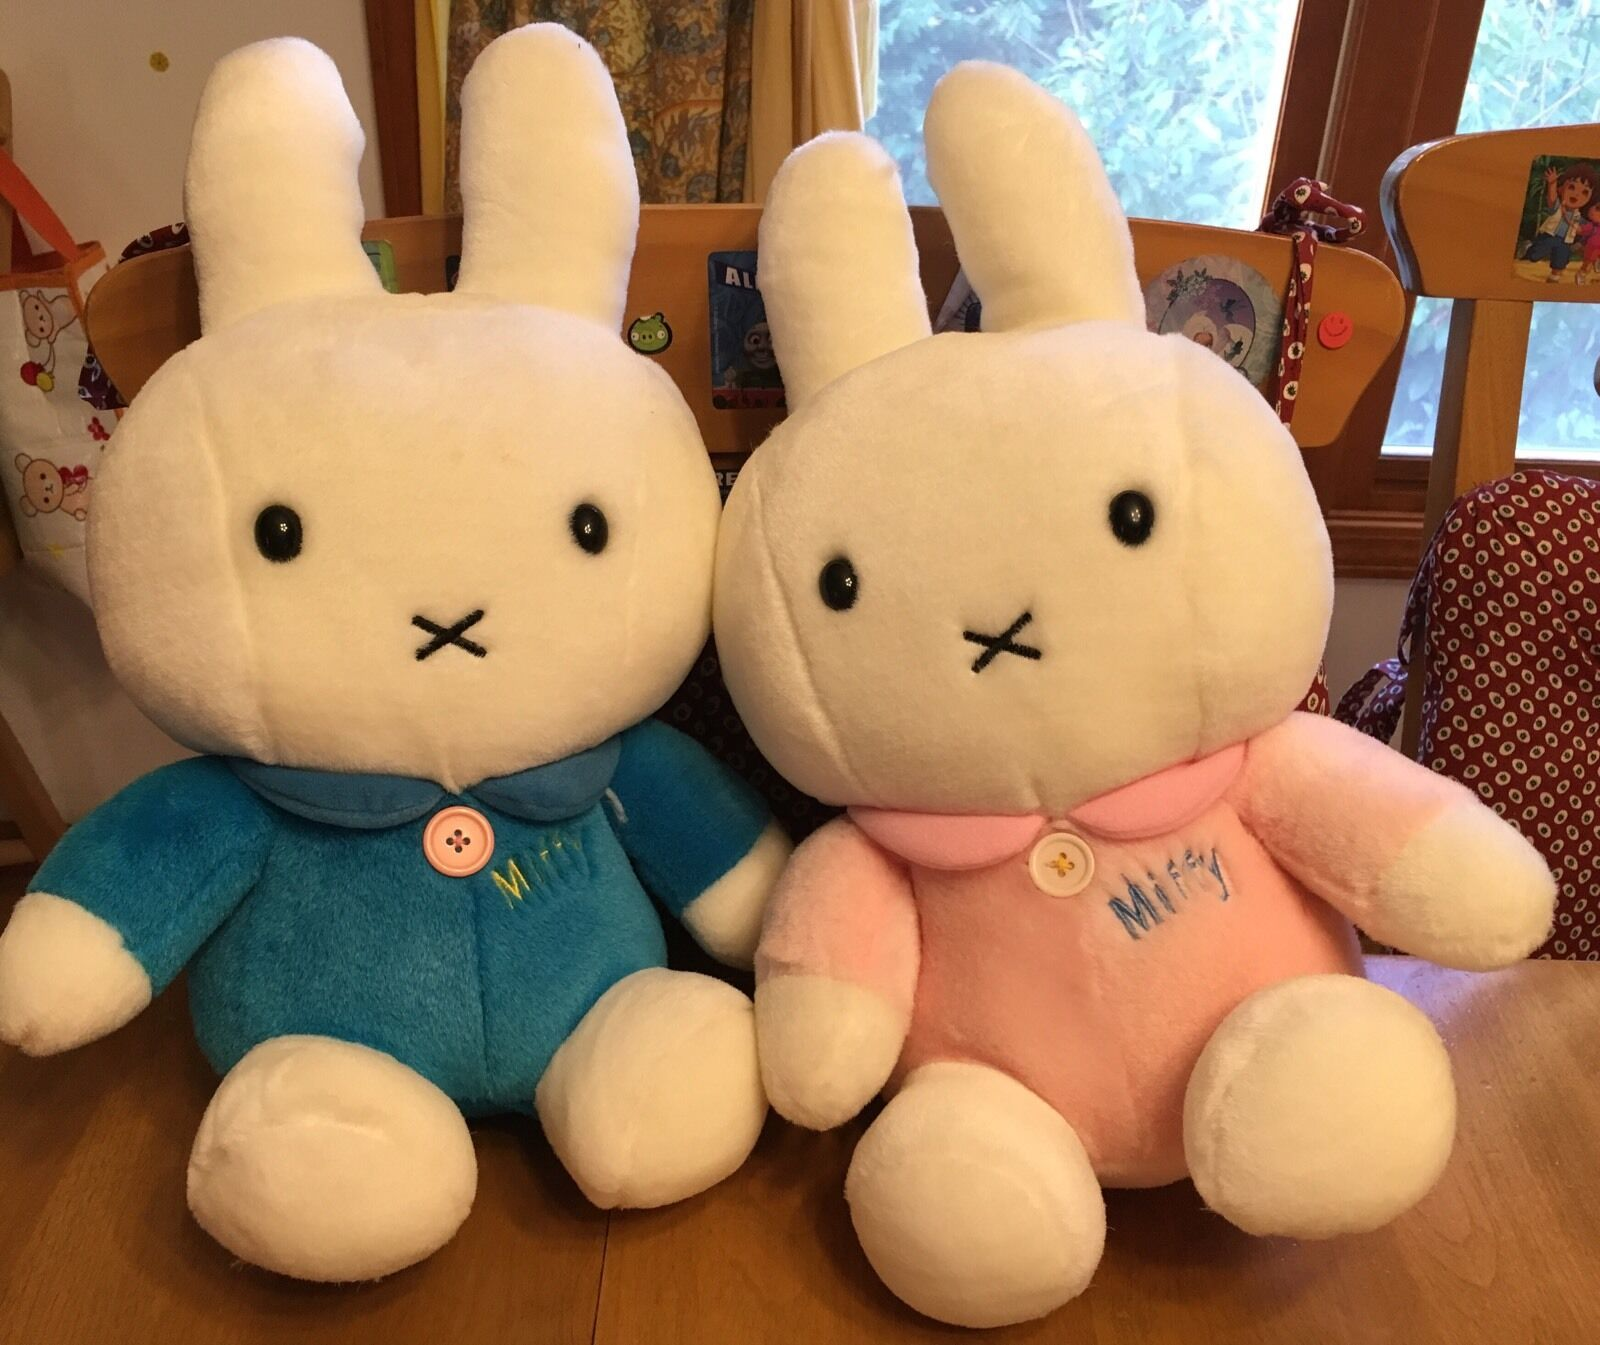 NEW - Set of 2 Japanese Miffy Plush Dolls 15